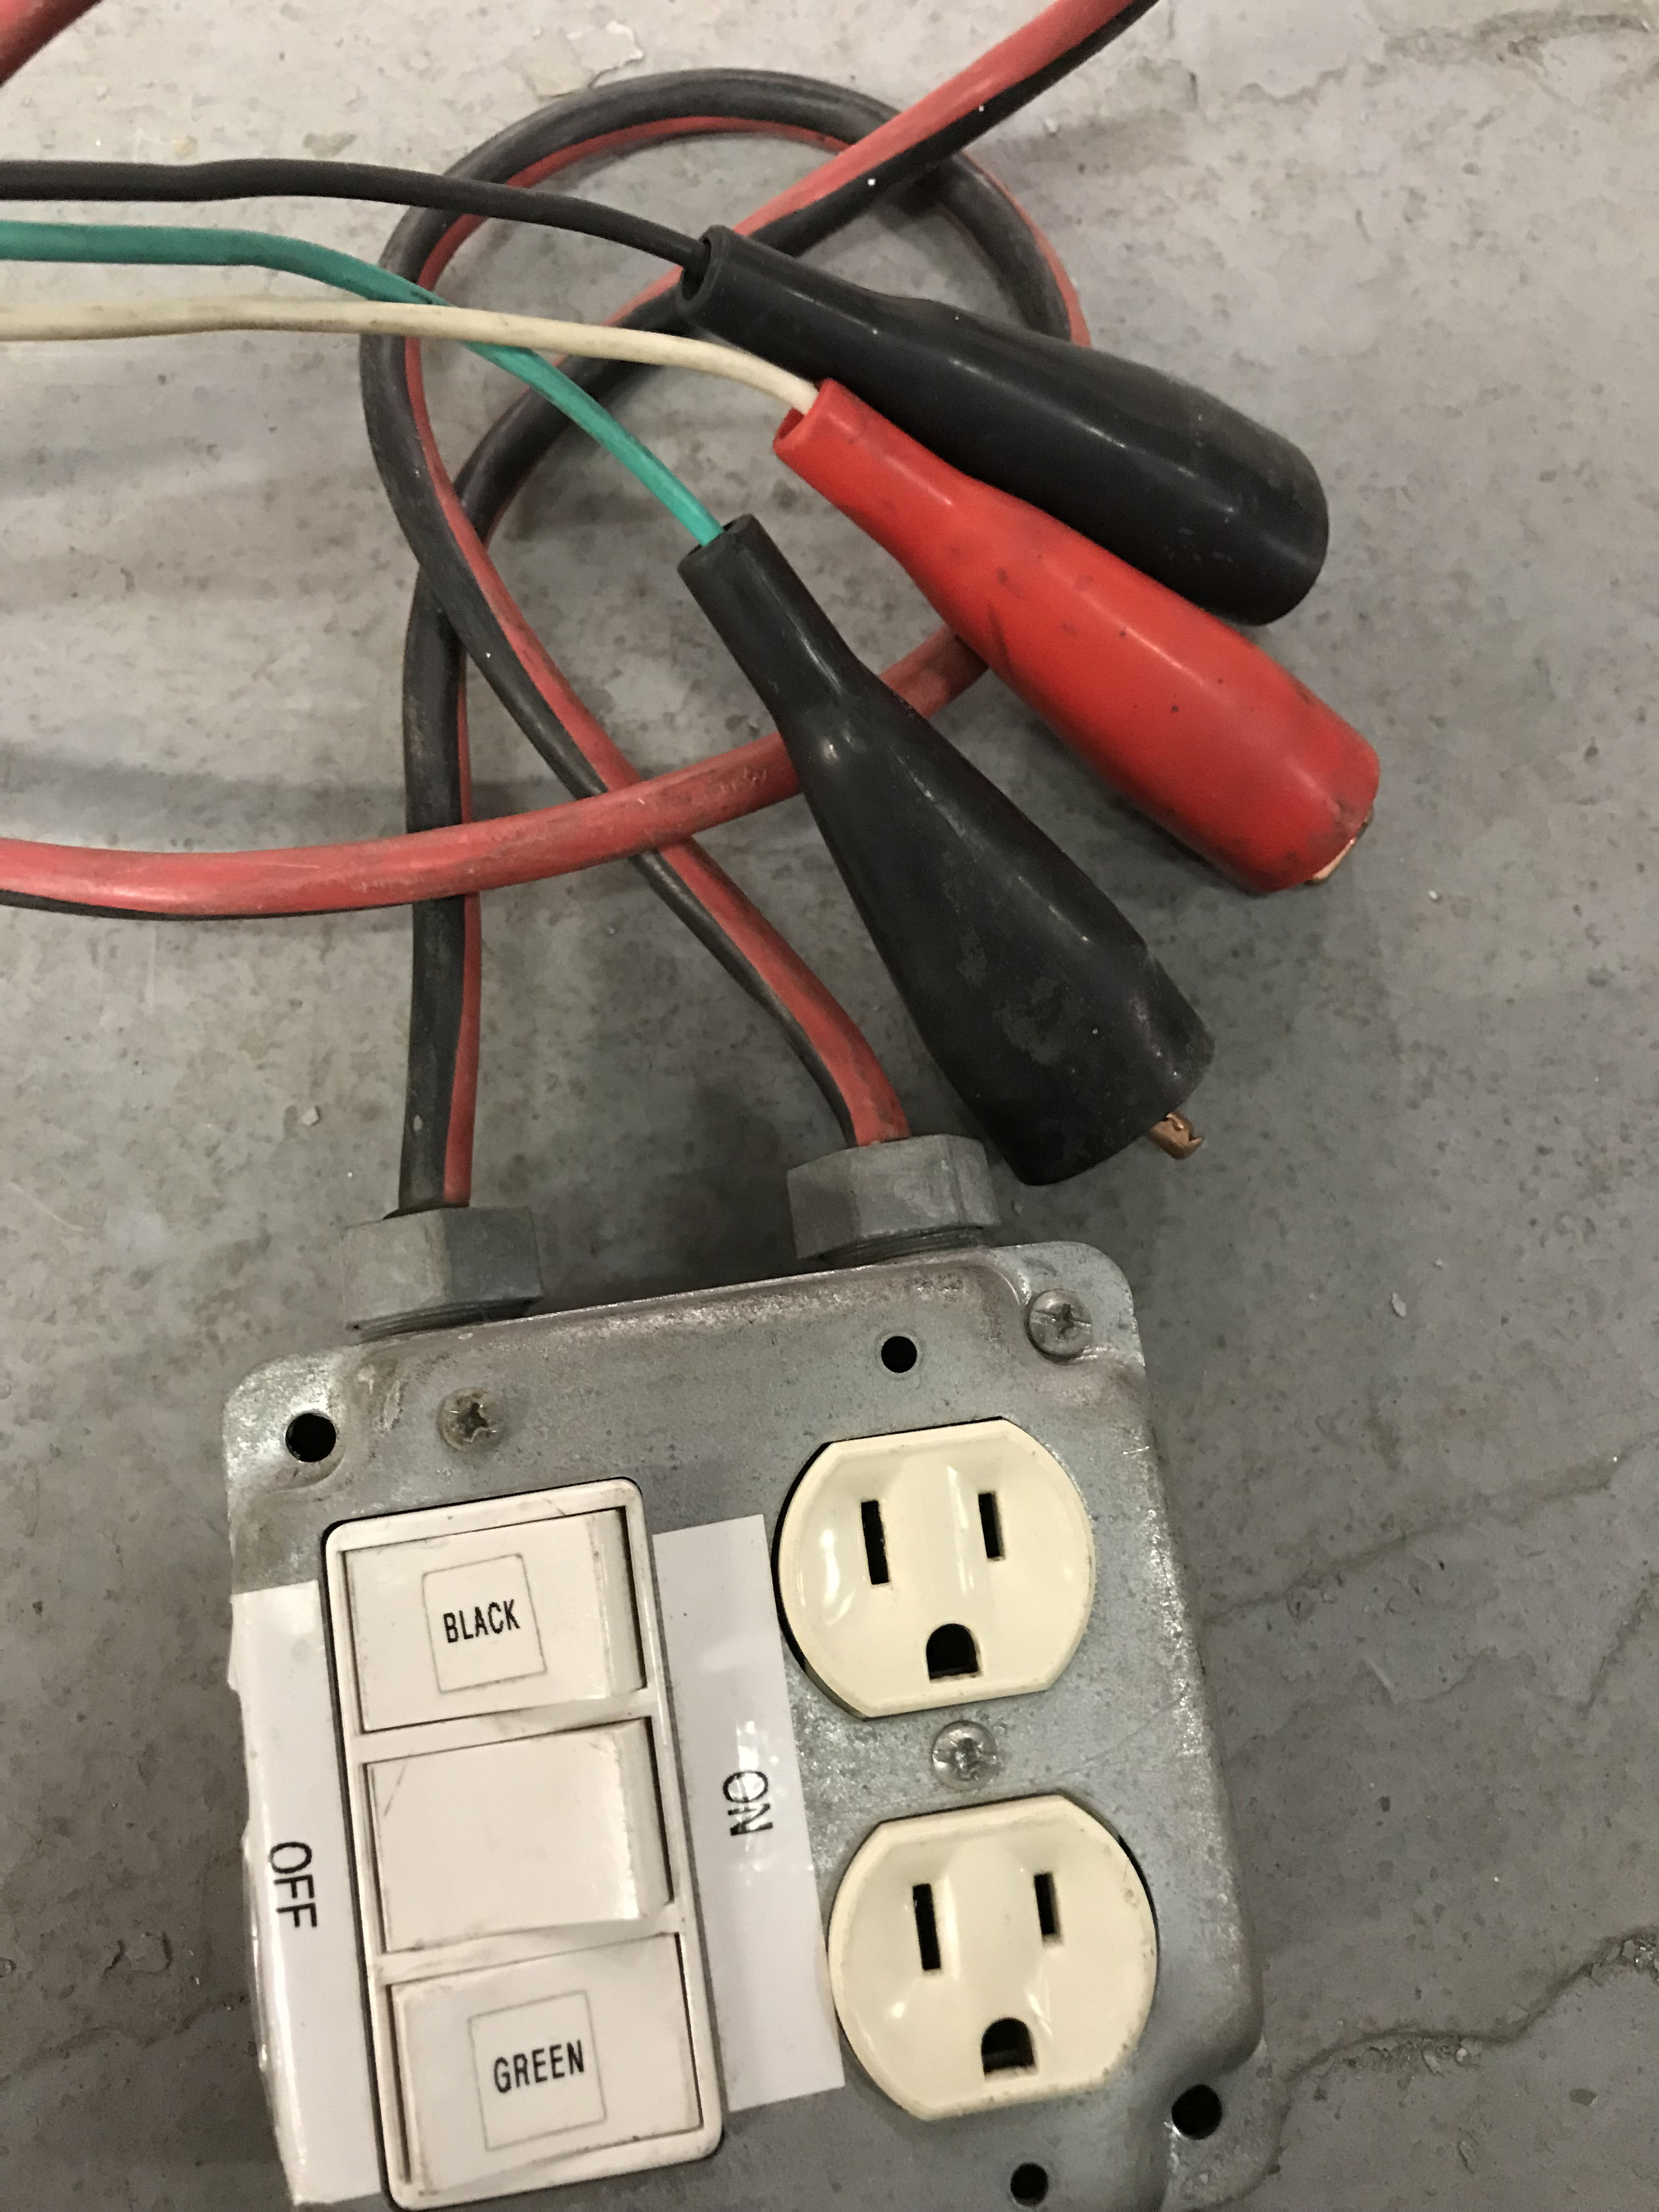 Custom Voltage Test Box Electrical Tech Wiring A 2 Switch My Setup Has 3 Rocker Switches Of The Give Me Switched Hot Wires And 3rd Gives Receptacle Black Green Hots White